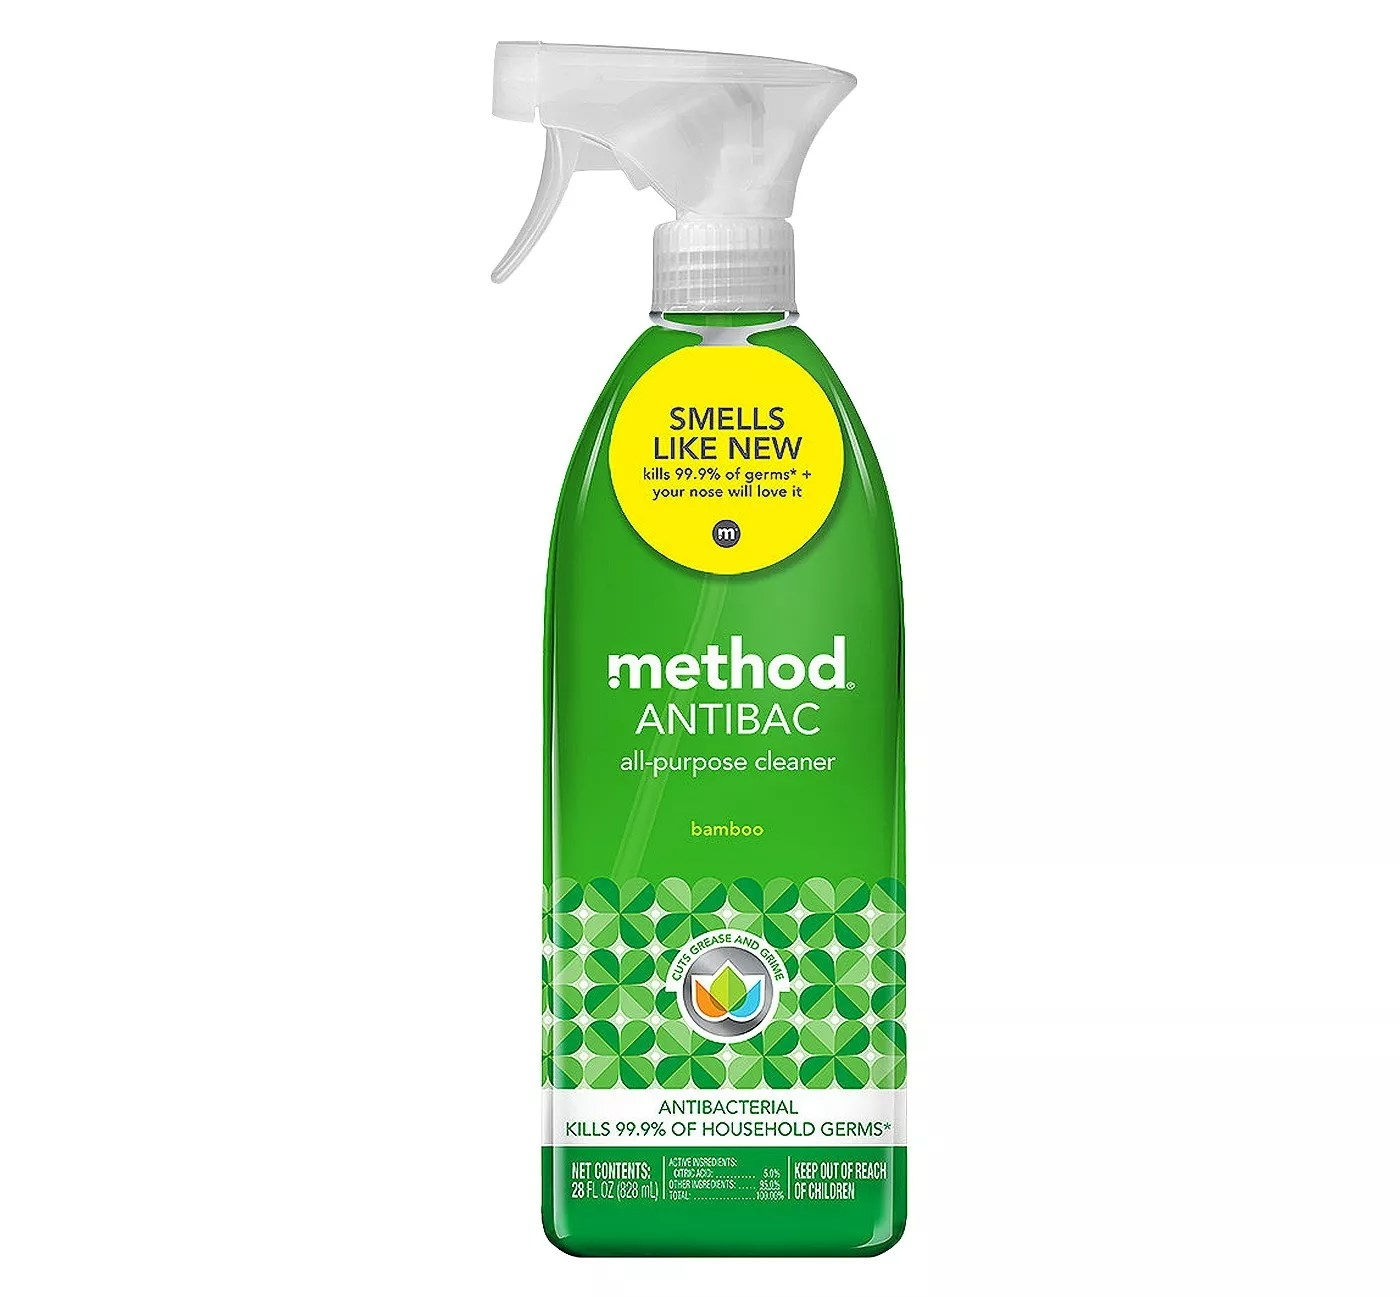 A 28-oz spray bottle of Method Antibacterial All-Purpose Cleaner which kills 99.9% of household germs